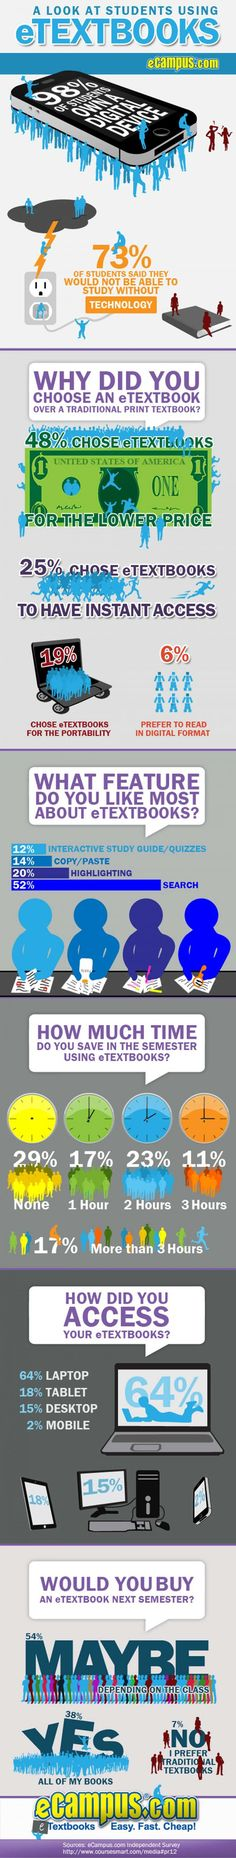 The battle between e-textbooks and print textbooks. Will traditional survive?